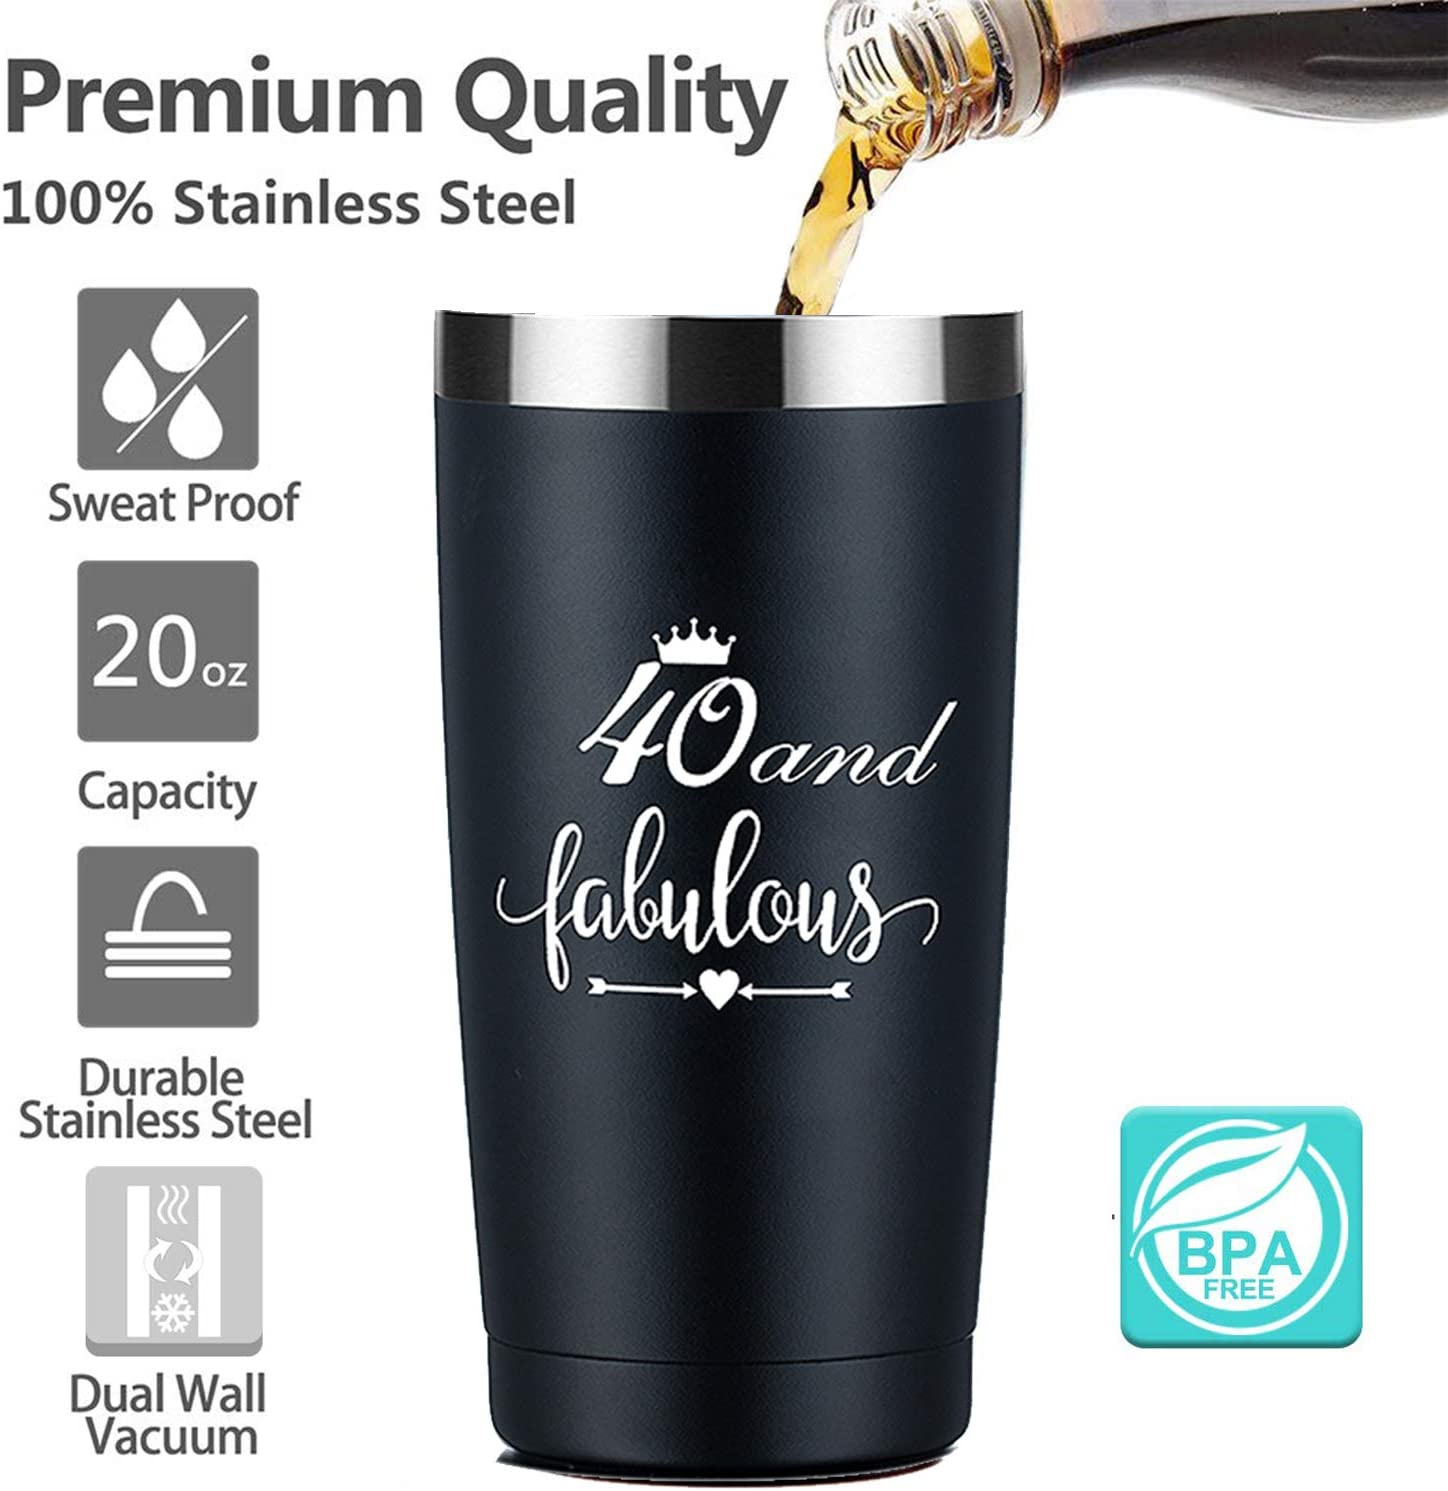 Amazon Com 40th Birthday Gifts For Men 20oz Black Insulated Tumbler With Lid And Straw Best Birthday Gift Ideas For Husband Wife Aunt Friend Father Him Her Stainless Steel Travel